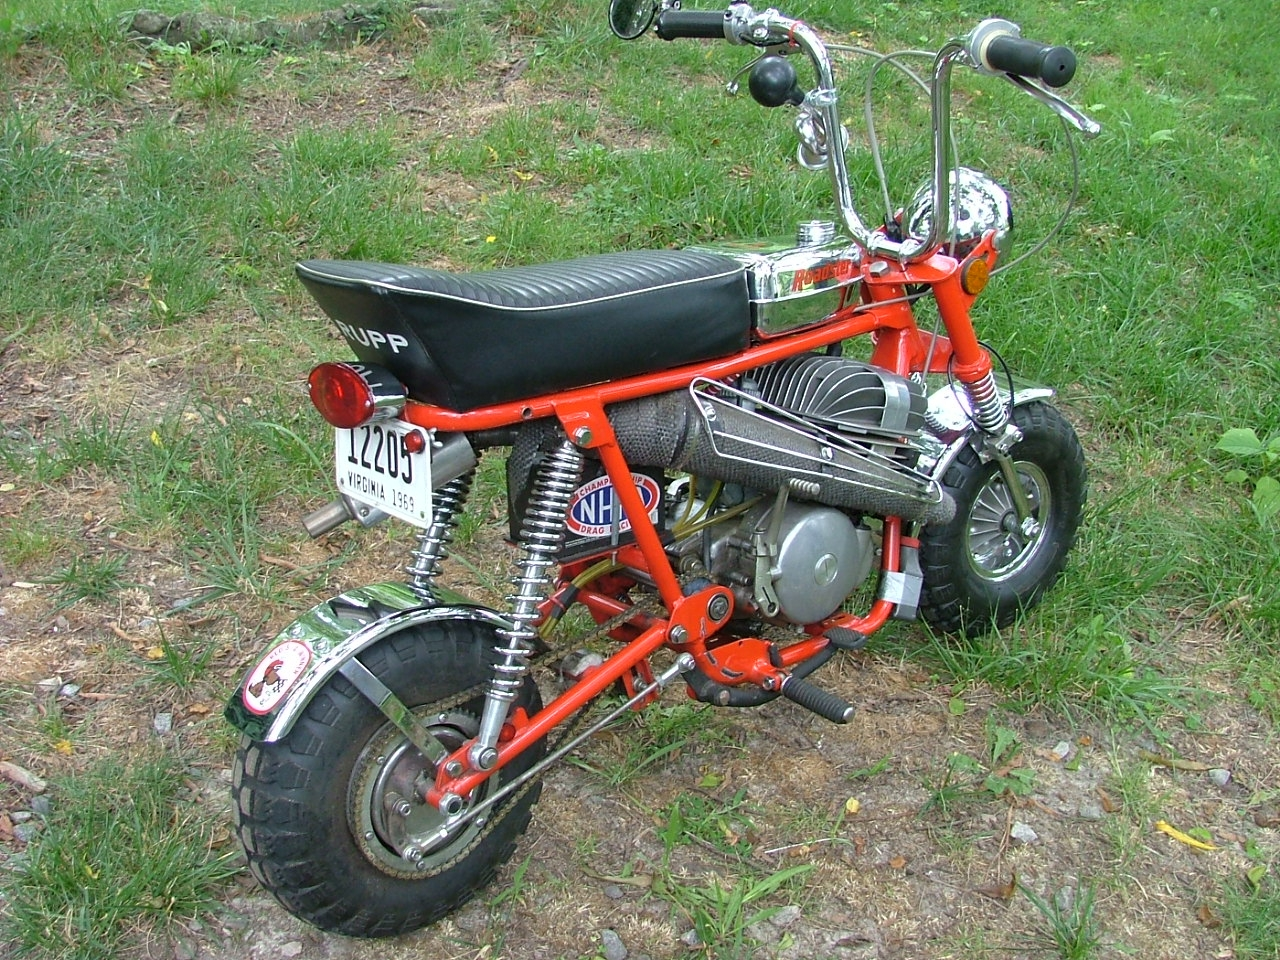 1980 CZ 125cc 6 speed. 30hp, Shoehorned into a 69 Roadster. Yes she flys. I run out of balls around 80mph.  Whew!